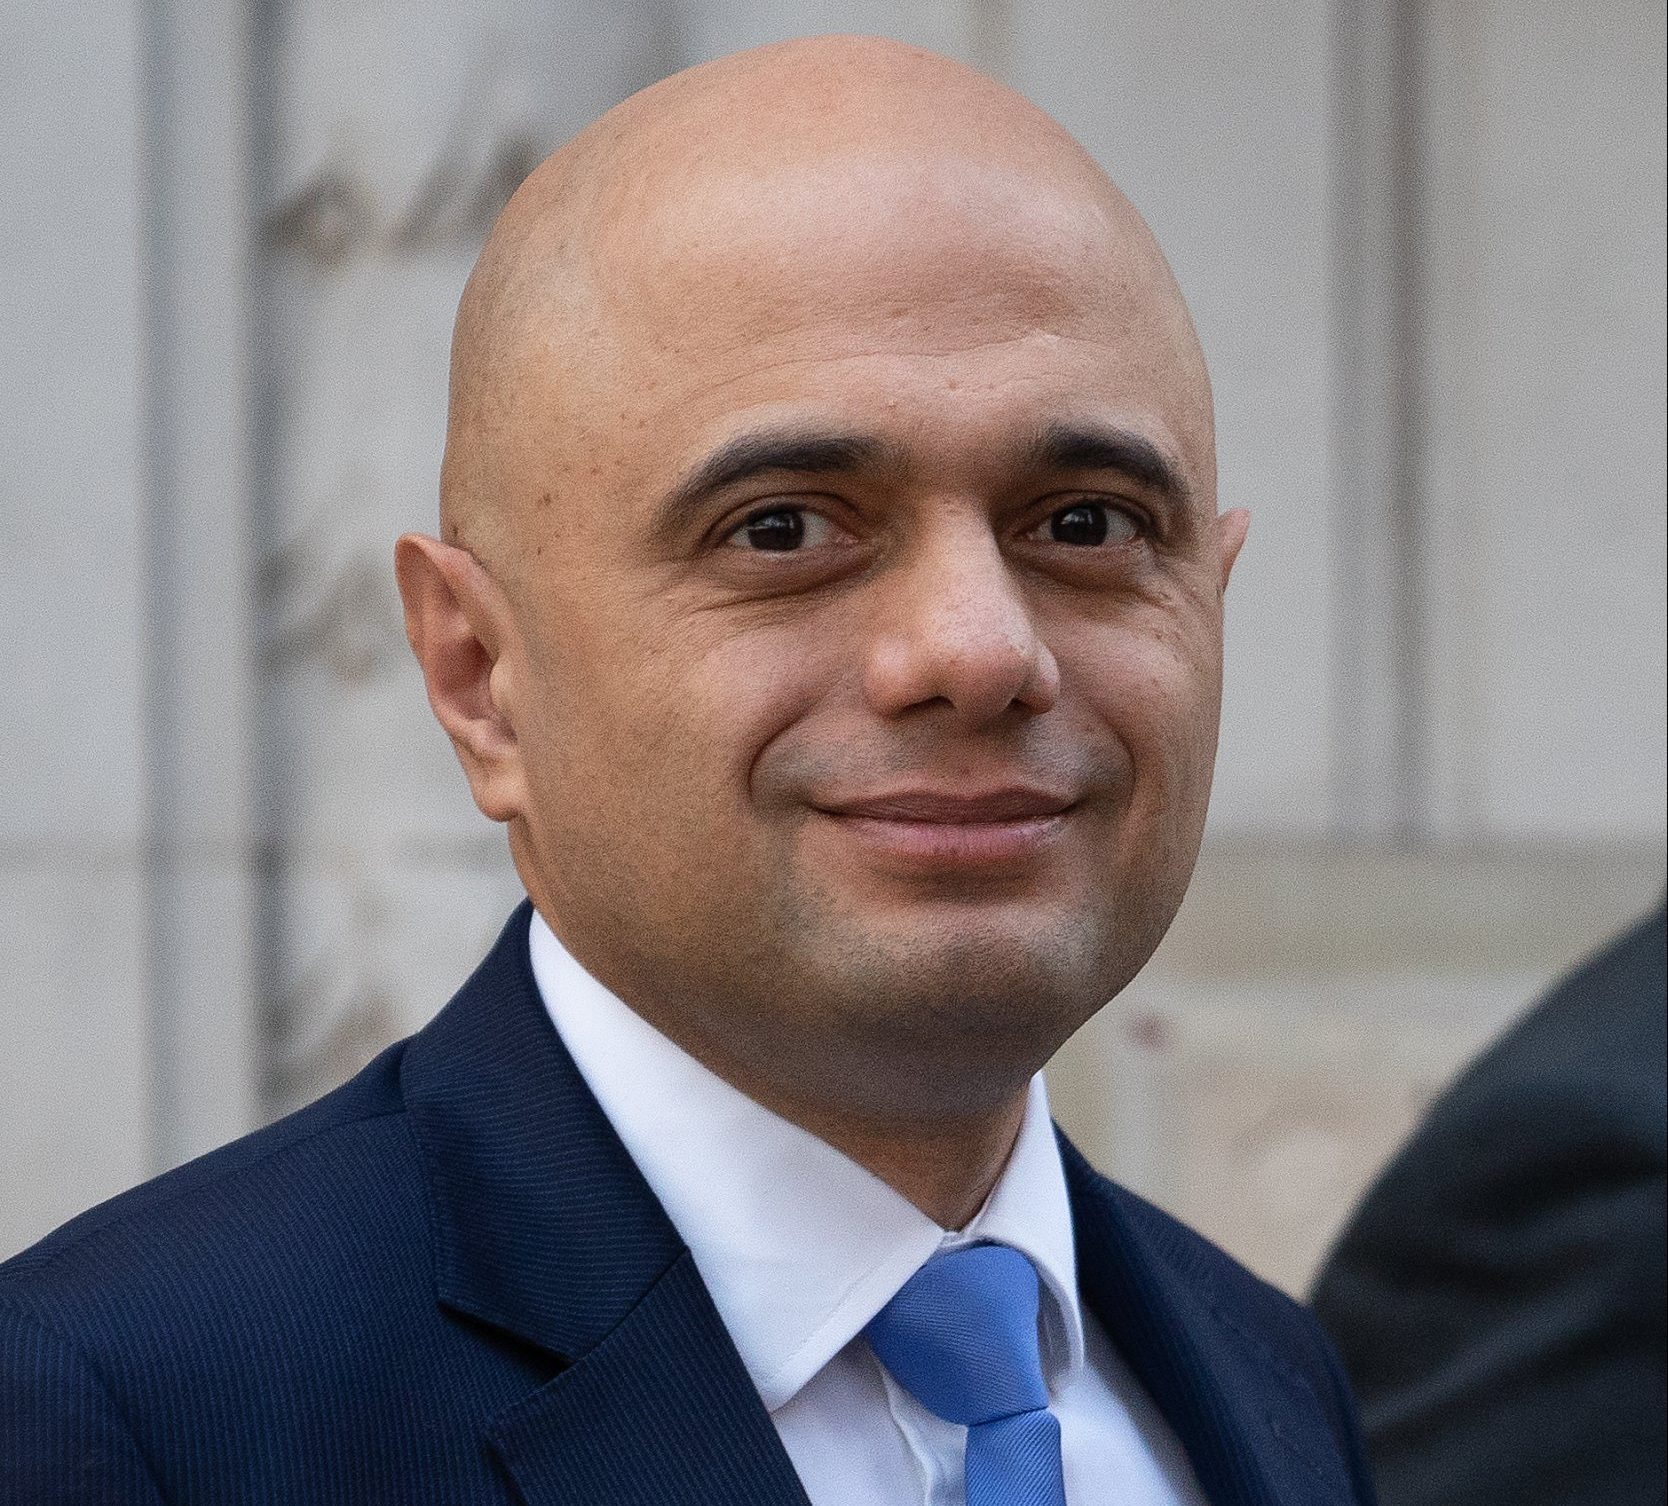 LONDON, ENGLAND - DECEMBER 03: Home Secretary Sajid Javid leaves Millbank studios after appearing on the BBC Today radio programme on December 03, 2018 in London, England. Members of Parliament will vote on the Brexit deal Ms May has reach with the European Union on December 11. (Photo by Leon Neal/Getty Images)